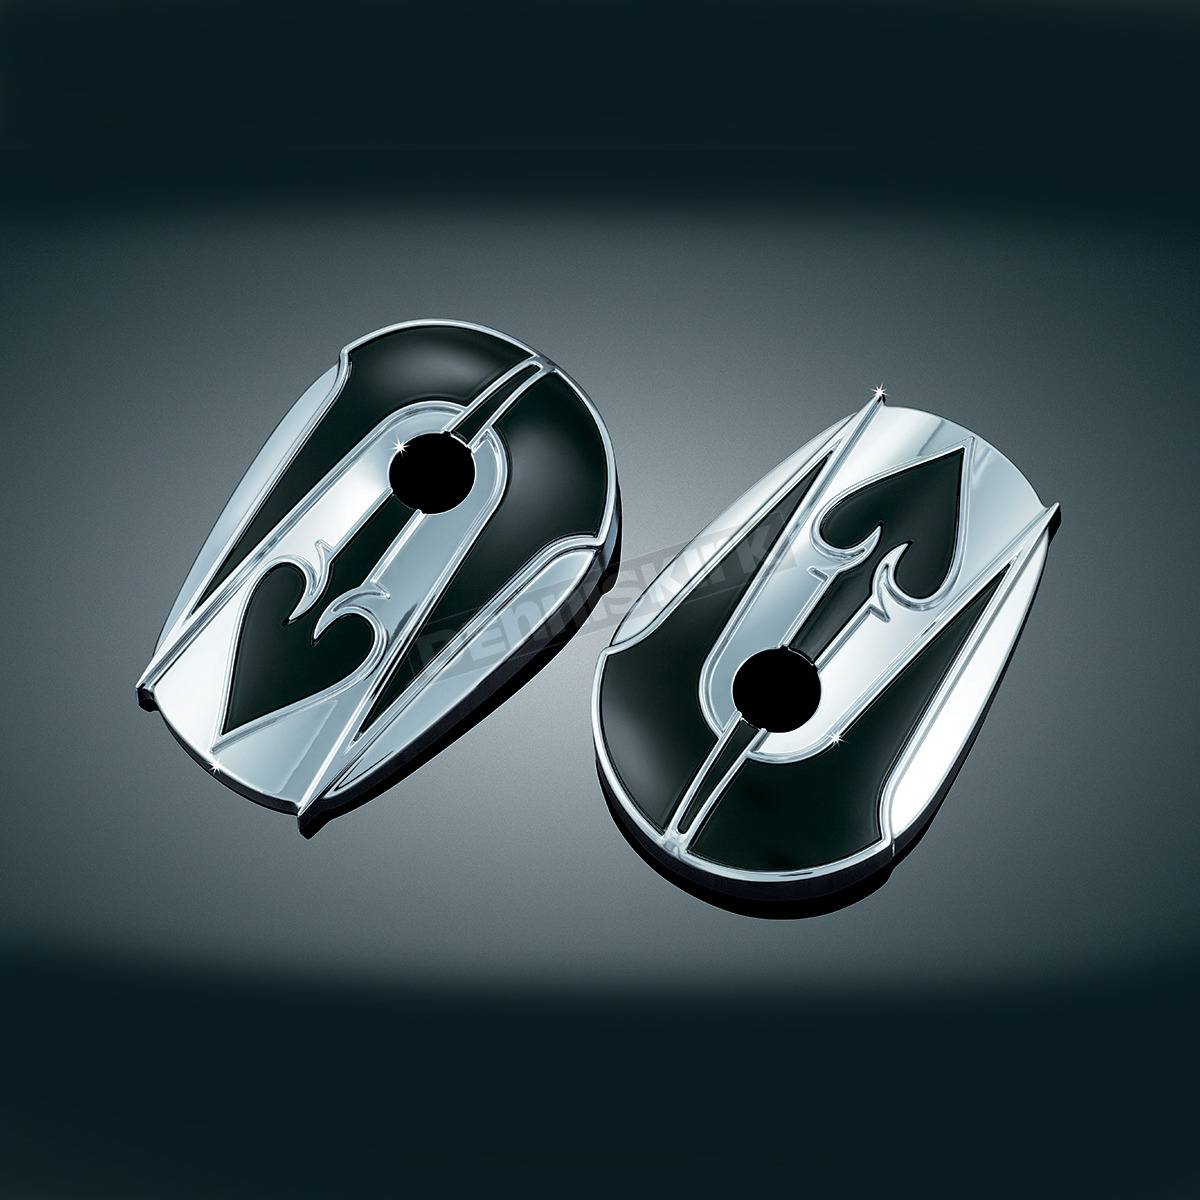 Kuryakyn ace of spade covers for oem mirrors 1755 harley for Mirror spades